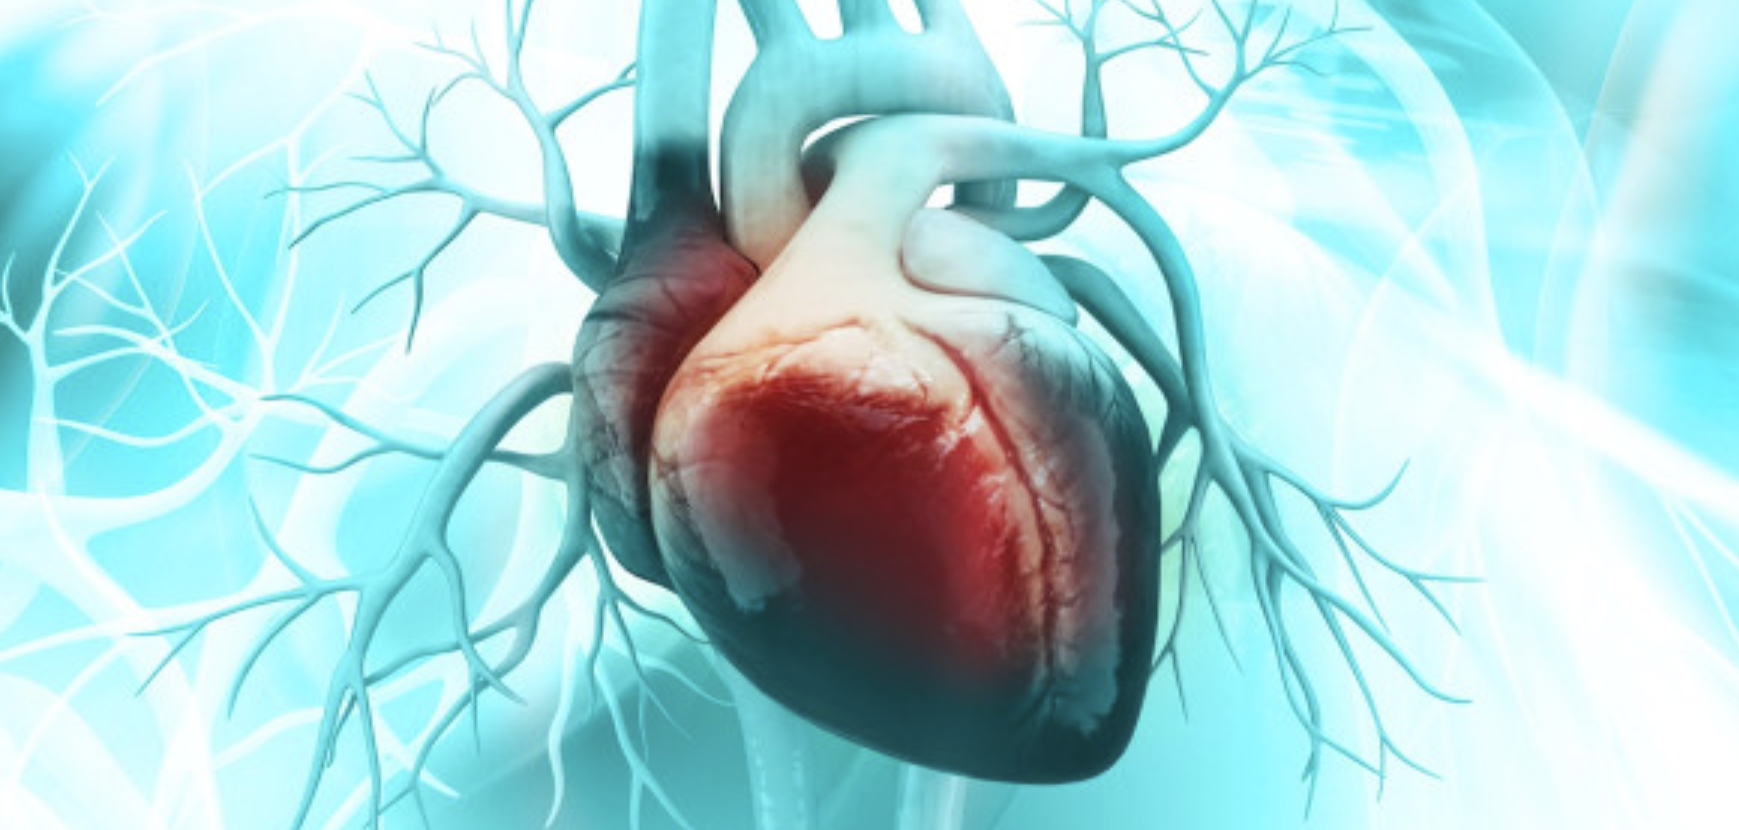 A Genetic Test Could Someday Predict Your Heart Attack Risk (Discover, 2020)